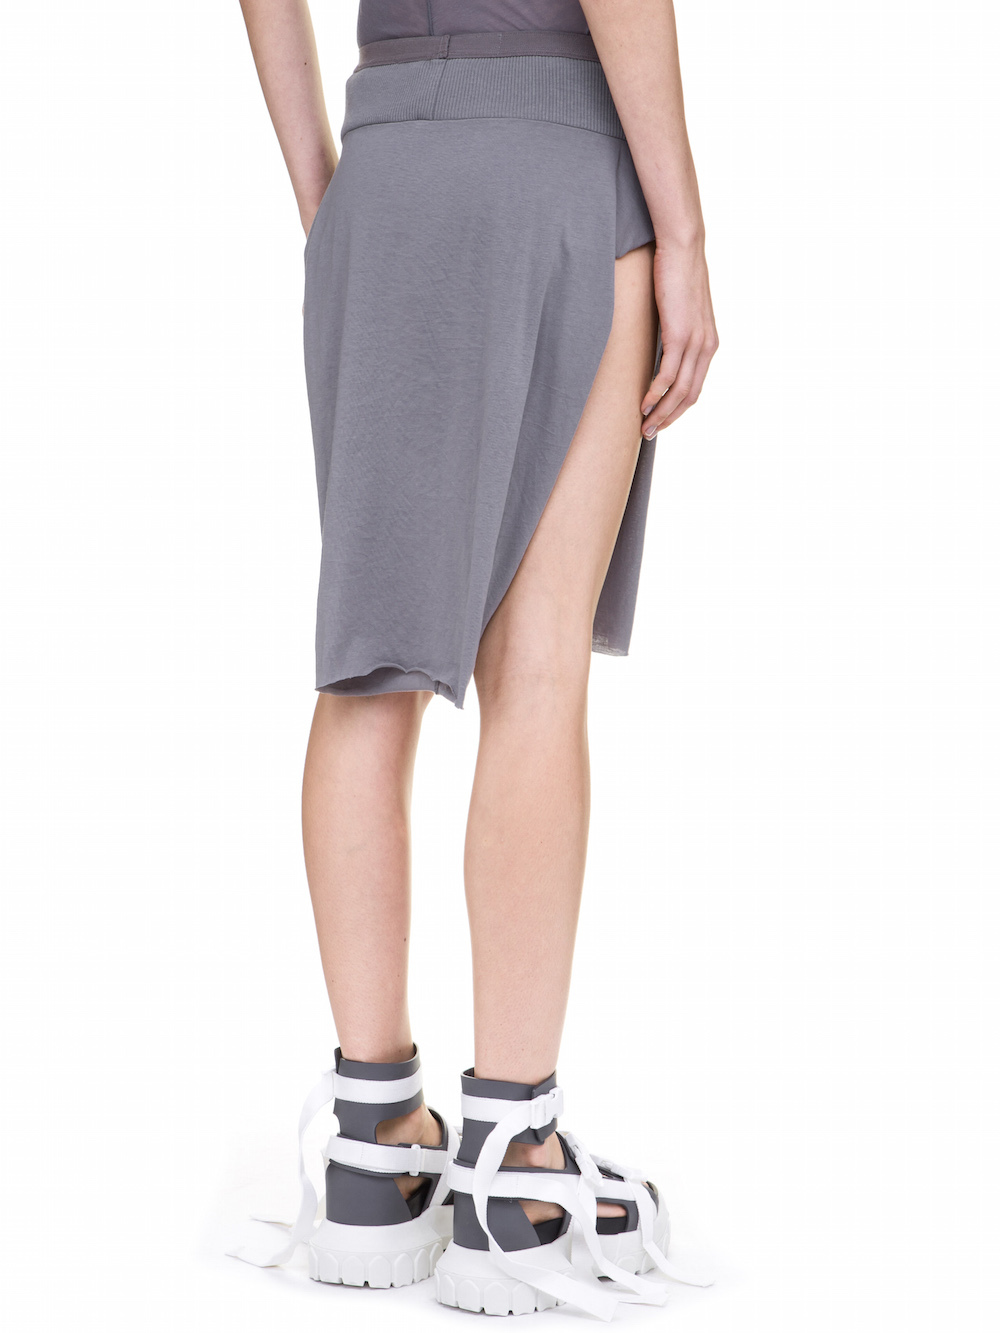 RICK OWENS LOIN SKIRT IN STONE GREY